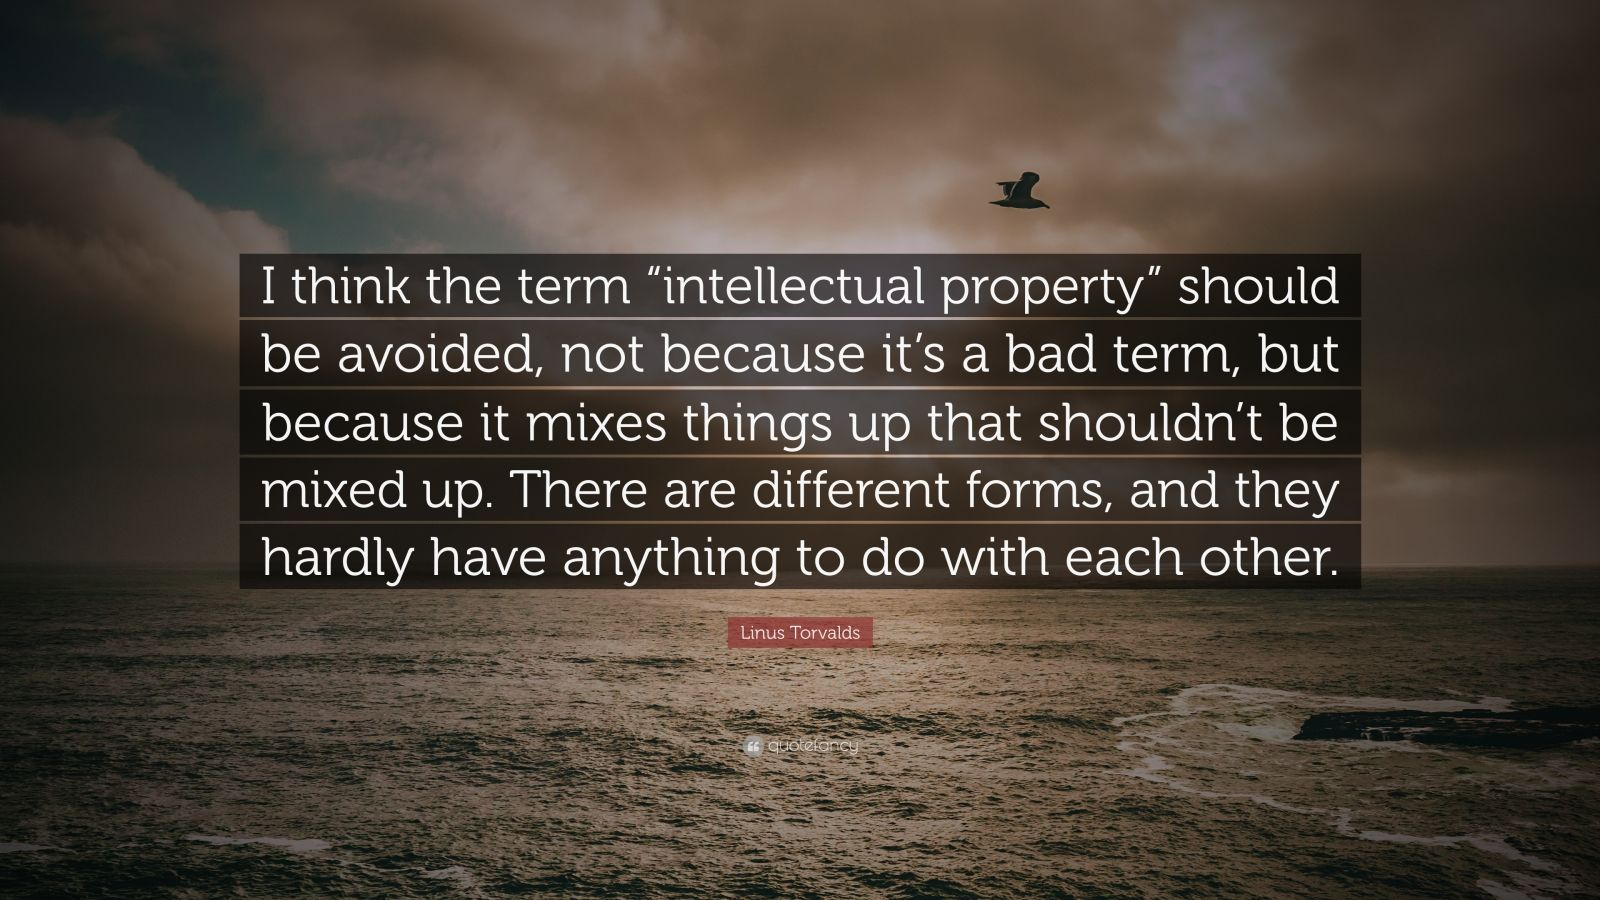 """Linus Torvalds Quote: """"I think the term """"intellectual property"""" should be avoided, not because it's a bad term, but because it mixes things up that shouldn't be mixed up. There are different forms, and they hardly have anything to do with each other."""""""